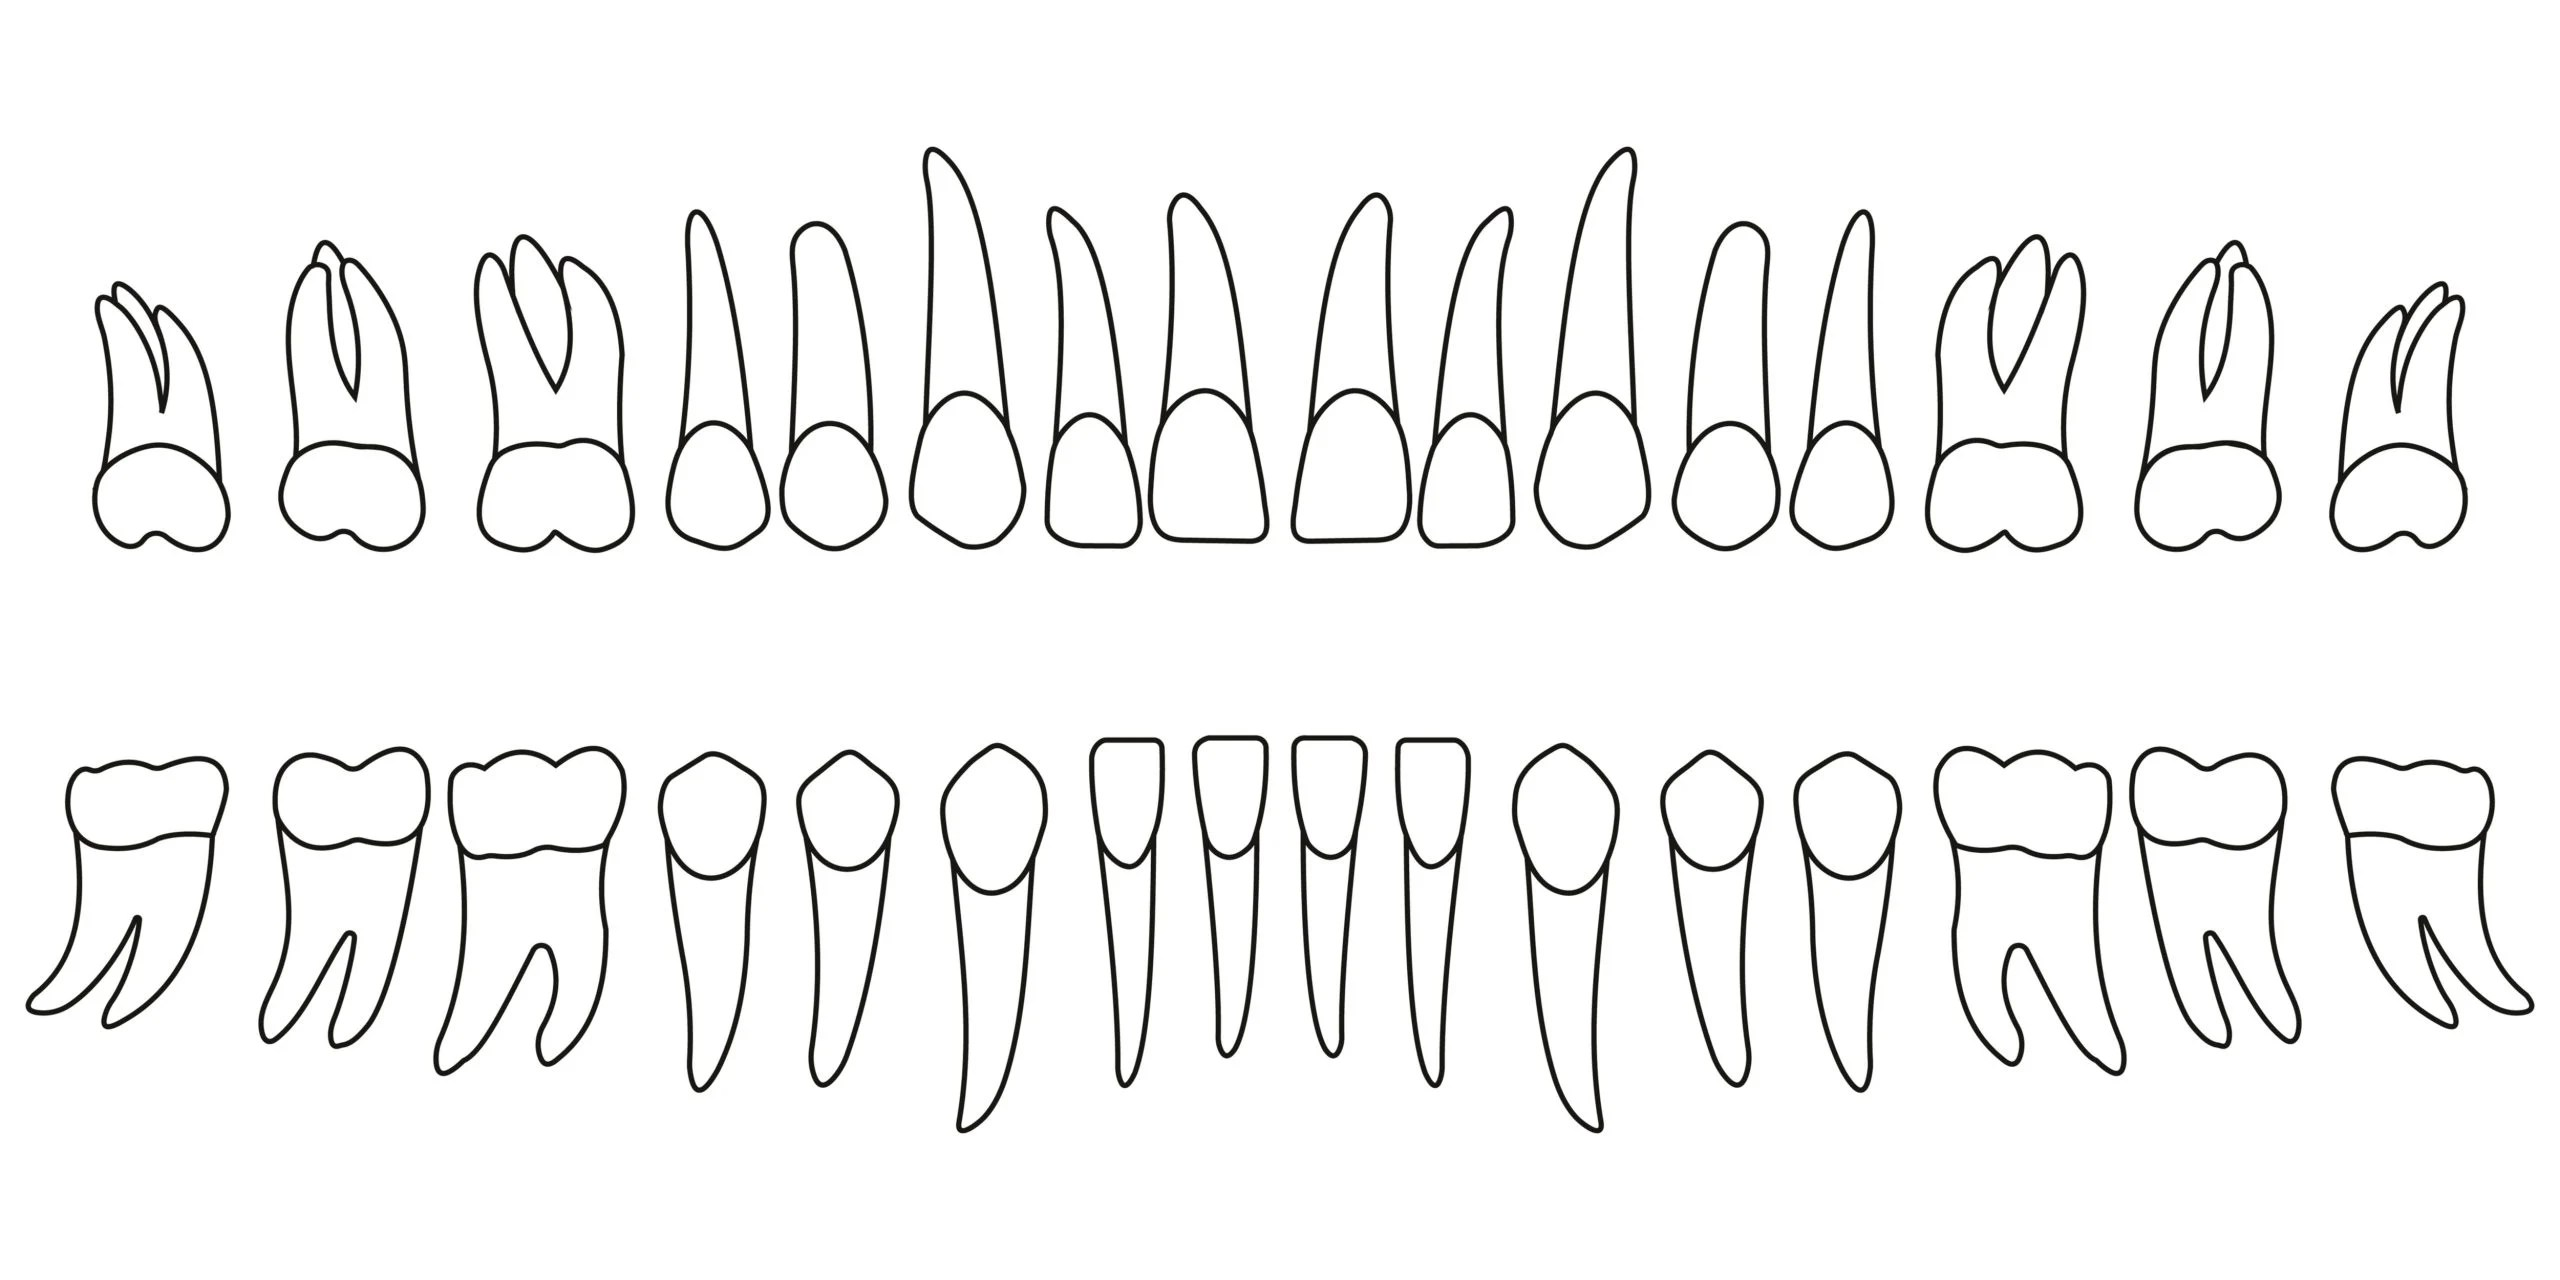 What Is Periodontal Charting?